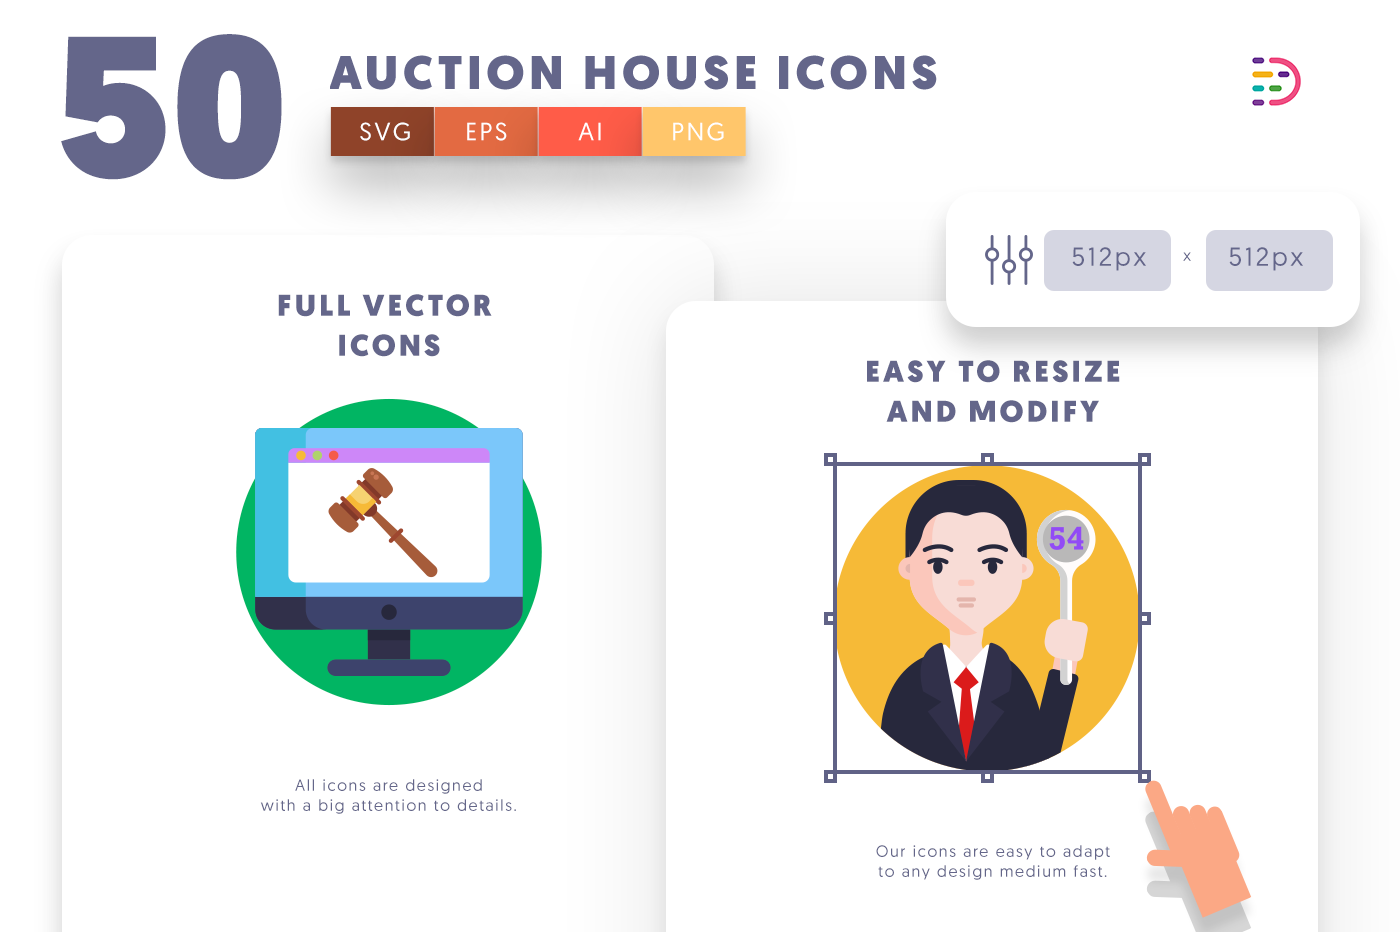 Full vector 50AuctionHouse Icons